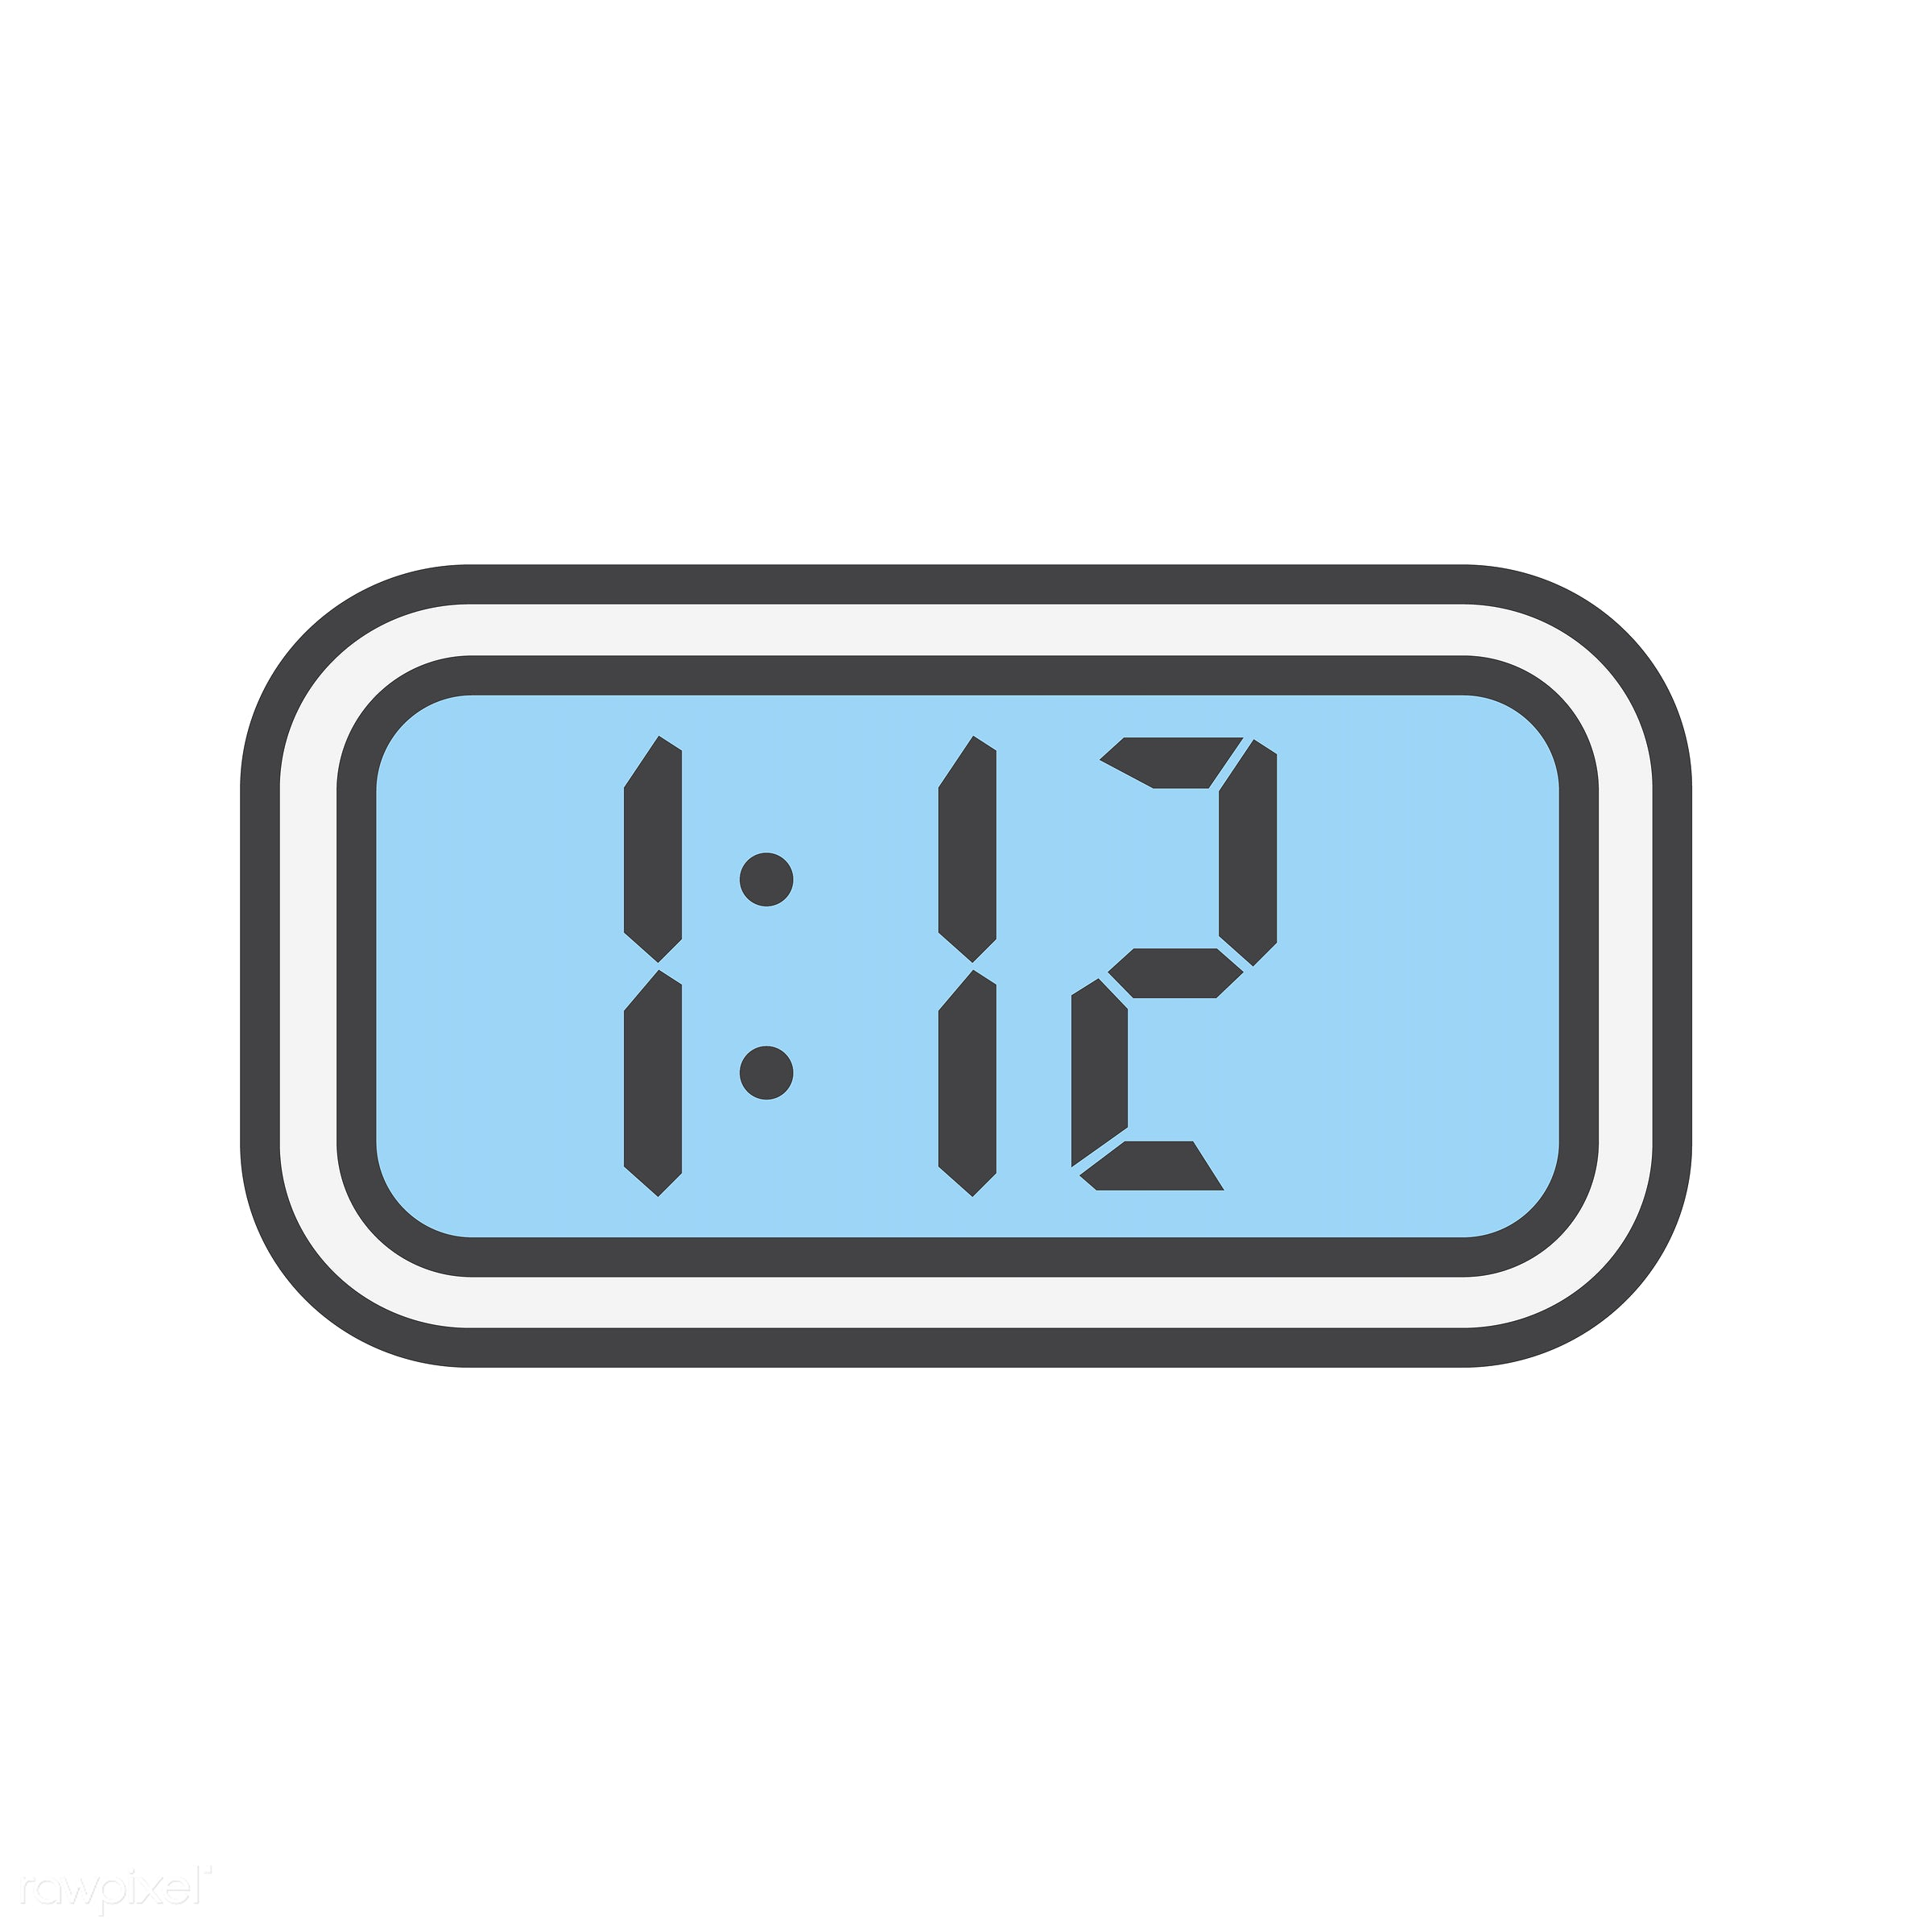 abode, adults, clock, comfort, cozy, decor, decoration, digital clock, dwelling, home, homely, house, household, living, pad...